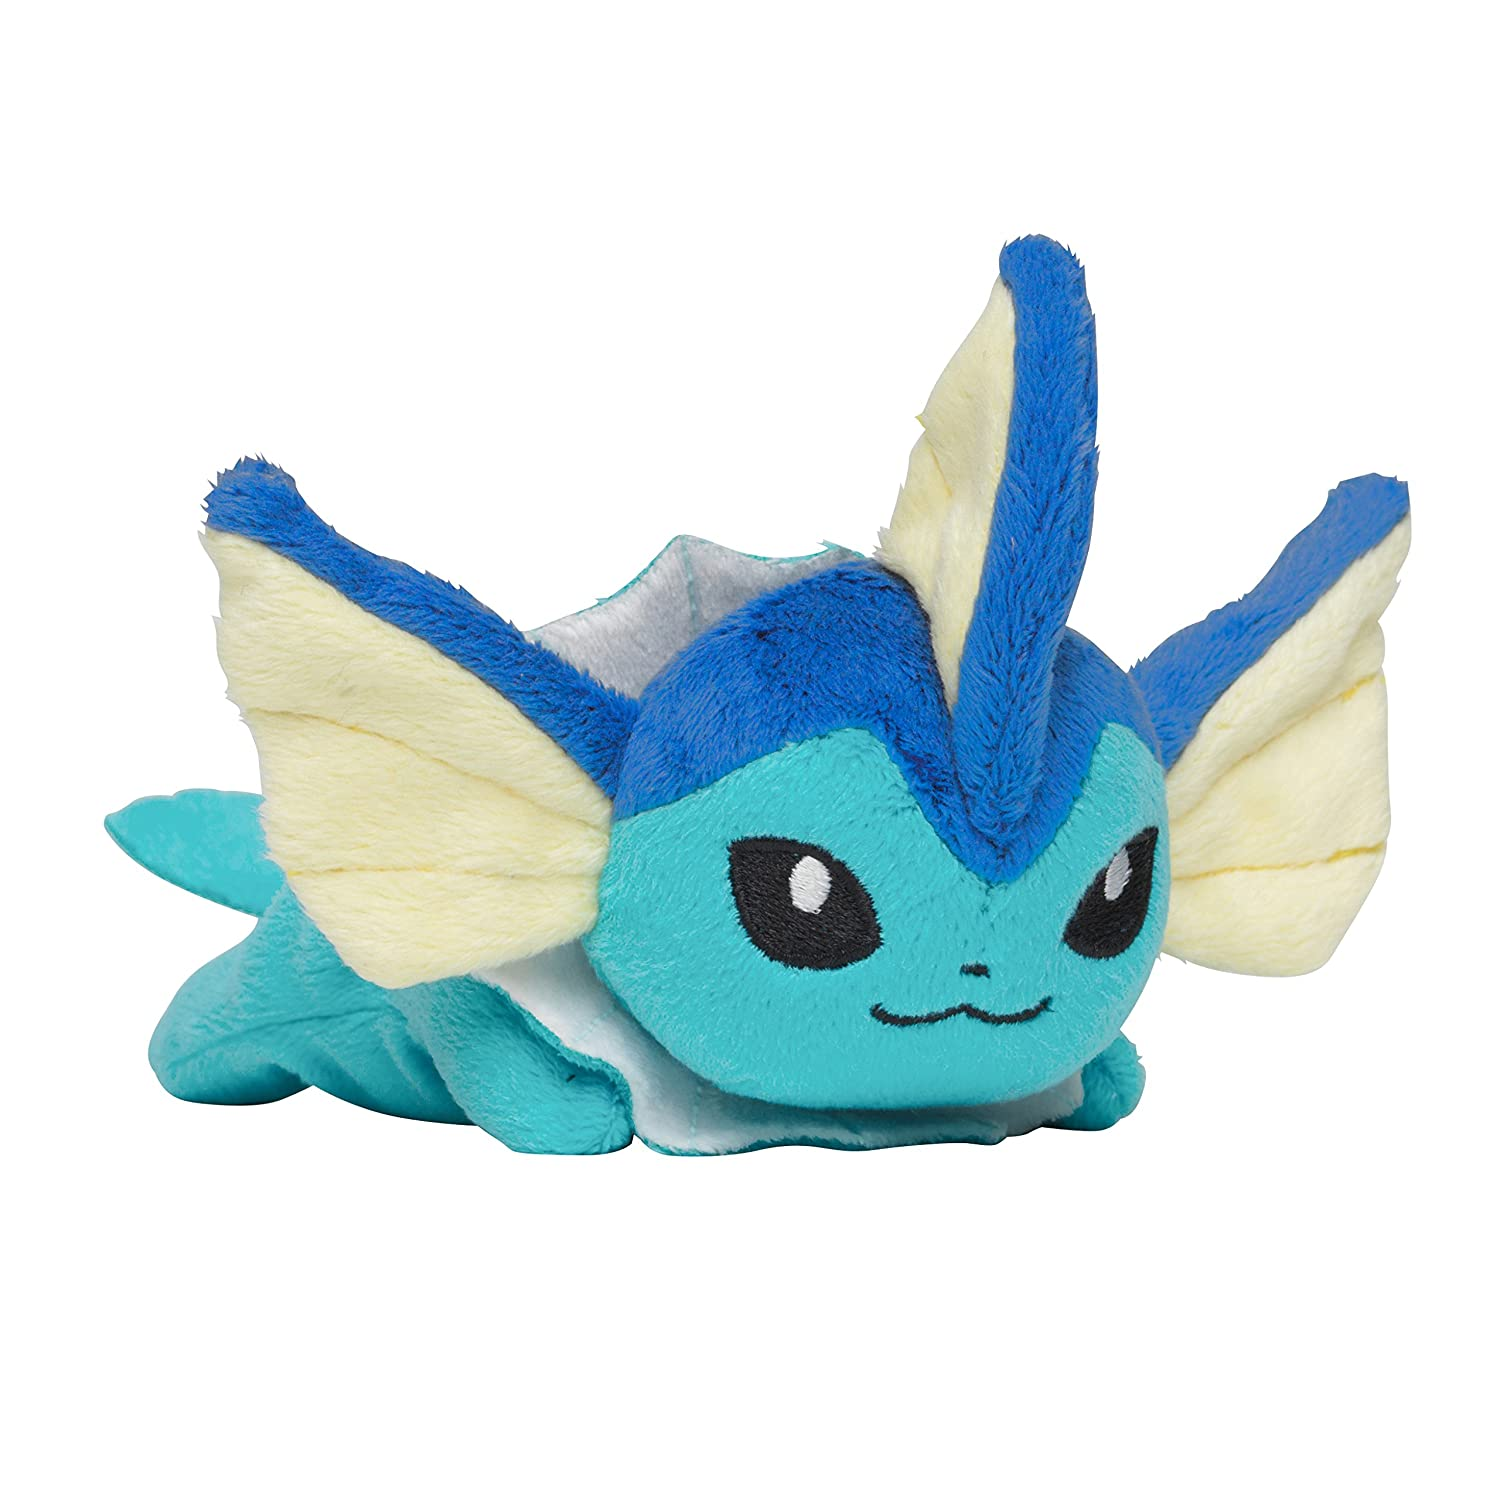 Amazon.com: Pokemon Center Original Kuttari Stuffed Vaporeon: Toys & Games